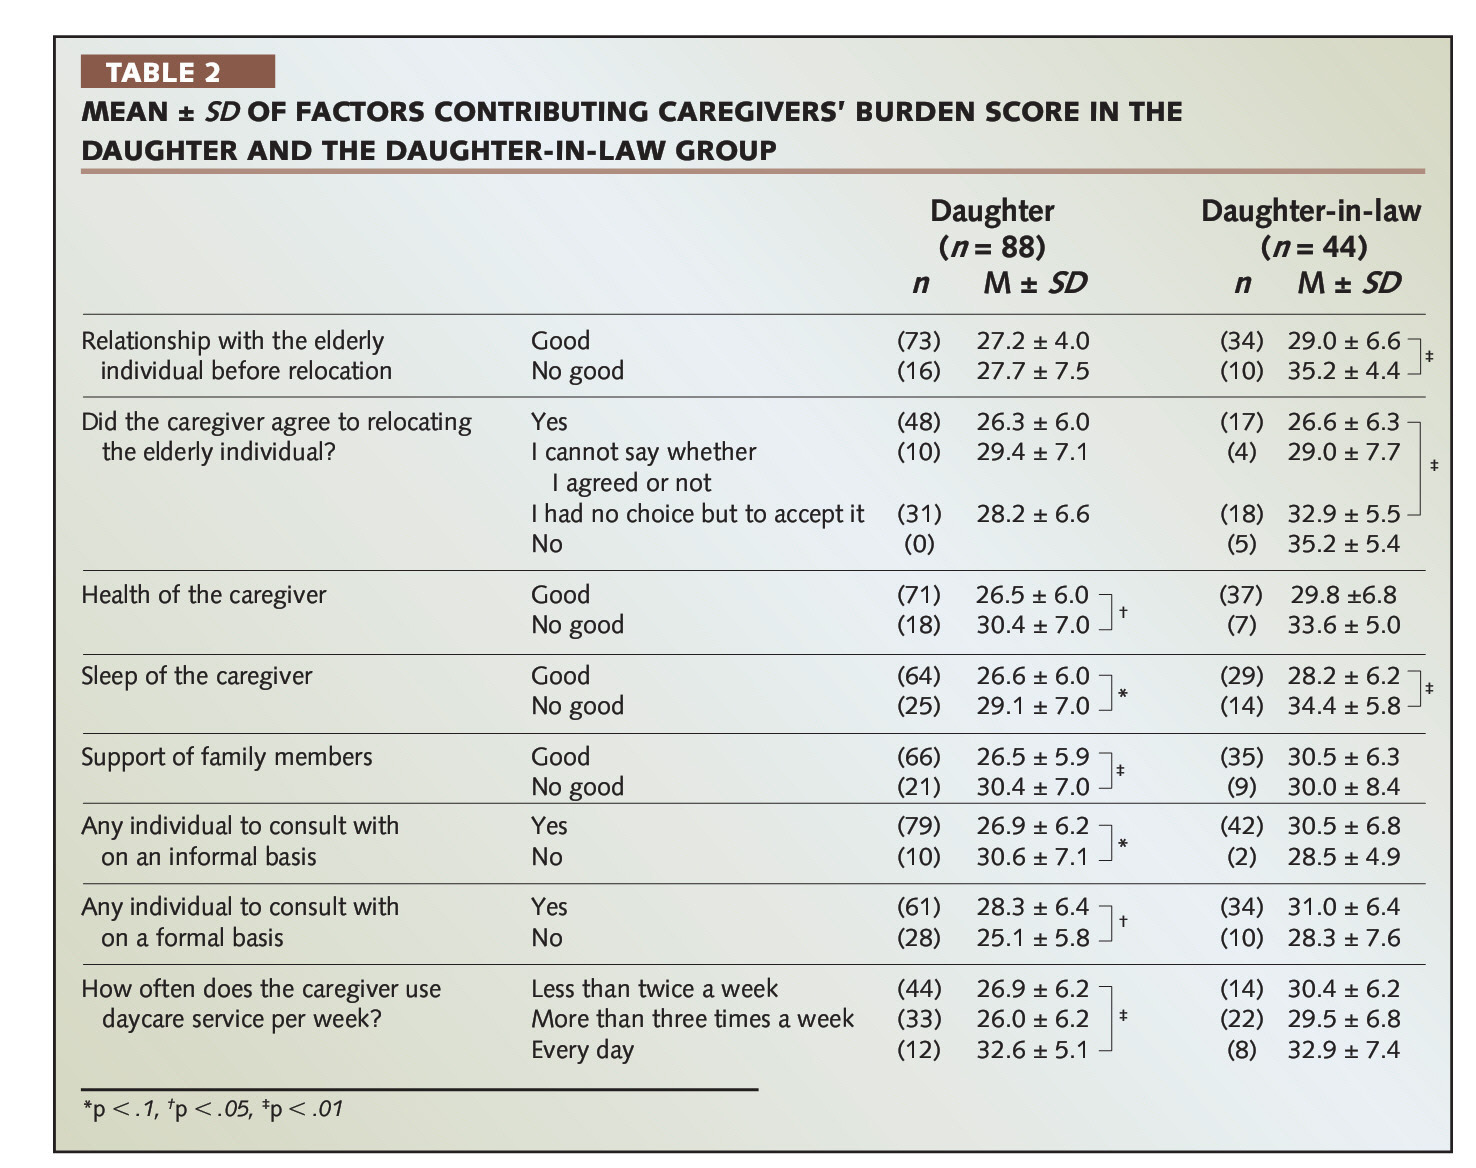 TABLE 2MEAN ± 5DOF FACTORS CONTRIBUTING CAREGIVERS' BURDEN SCORE IN THE DAUGHTER AND THE DAUGHTER-IN-LAW GROUP